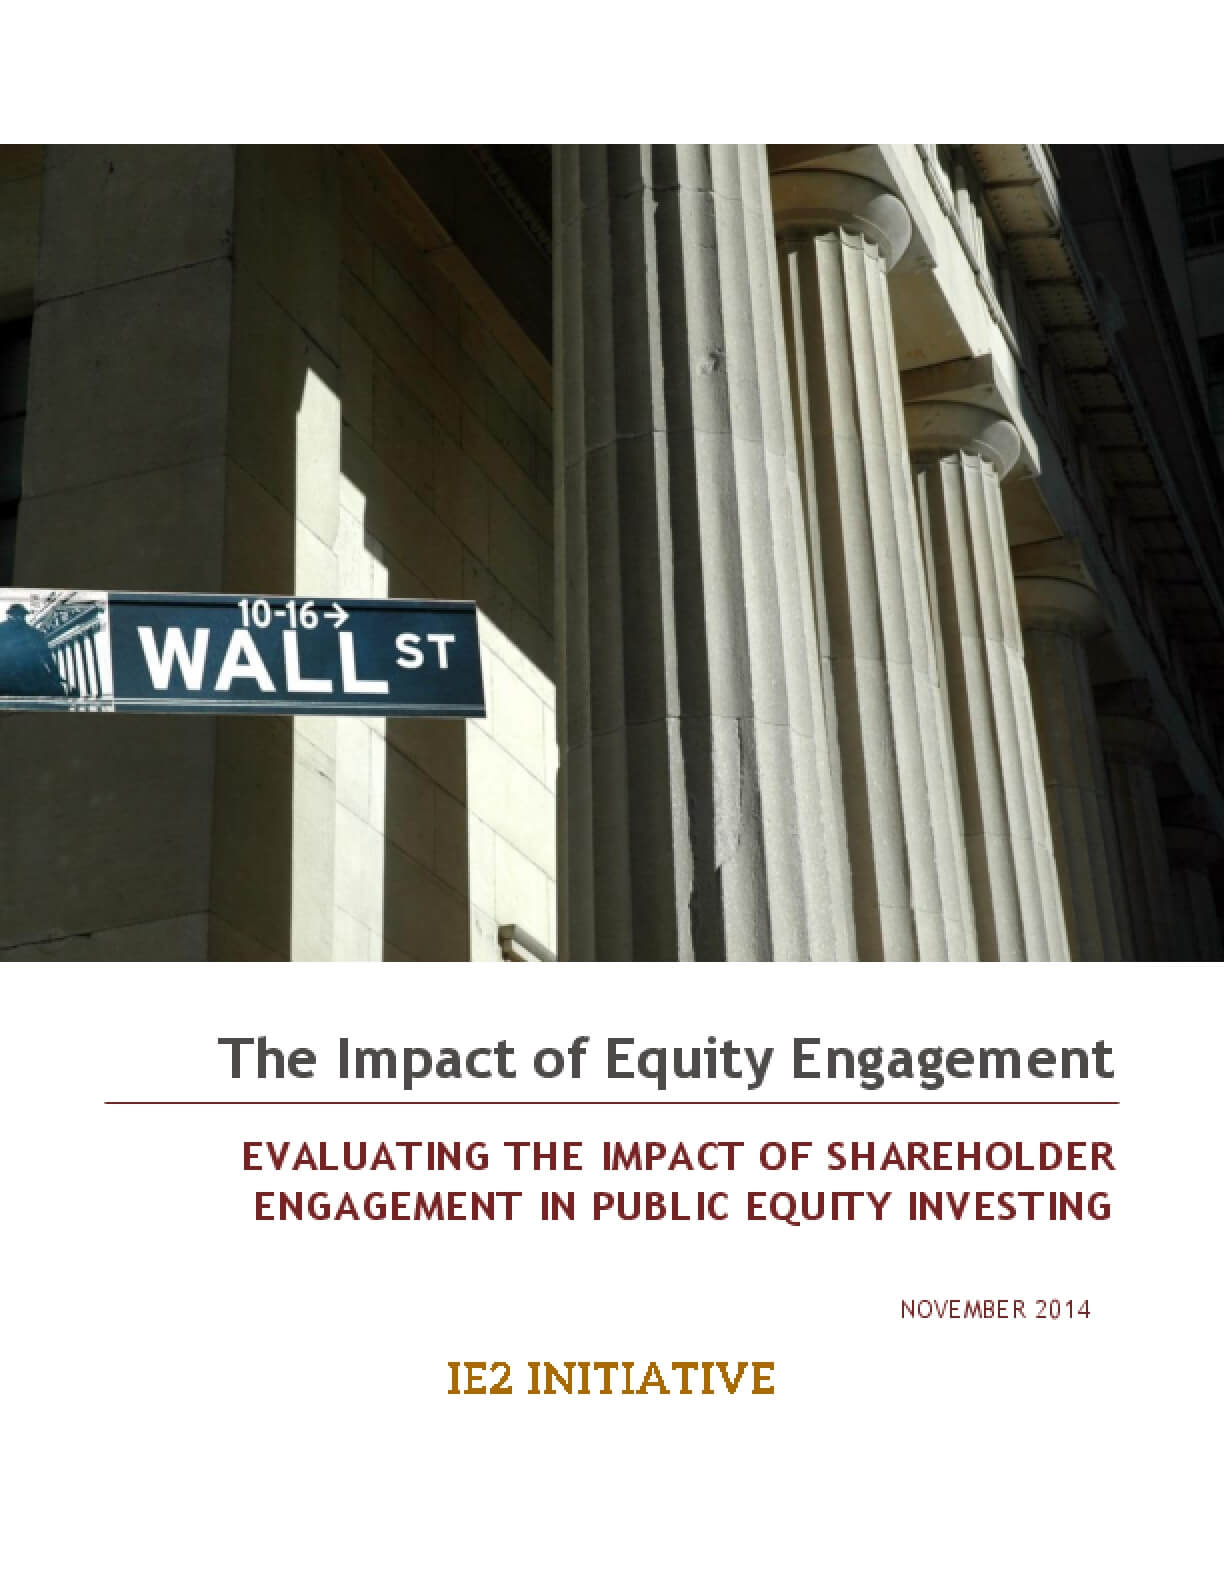 The Impact of Equity Engagement Evaluating the Impact of Shareholder Engagement in Public Equity Investing